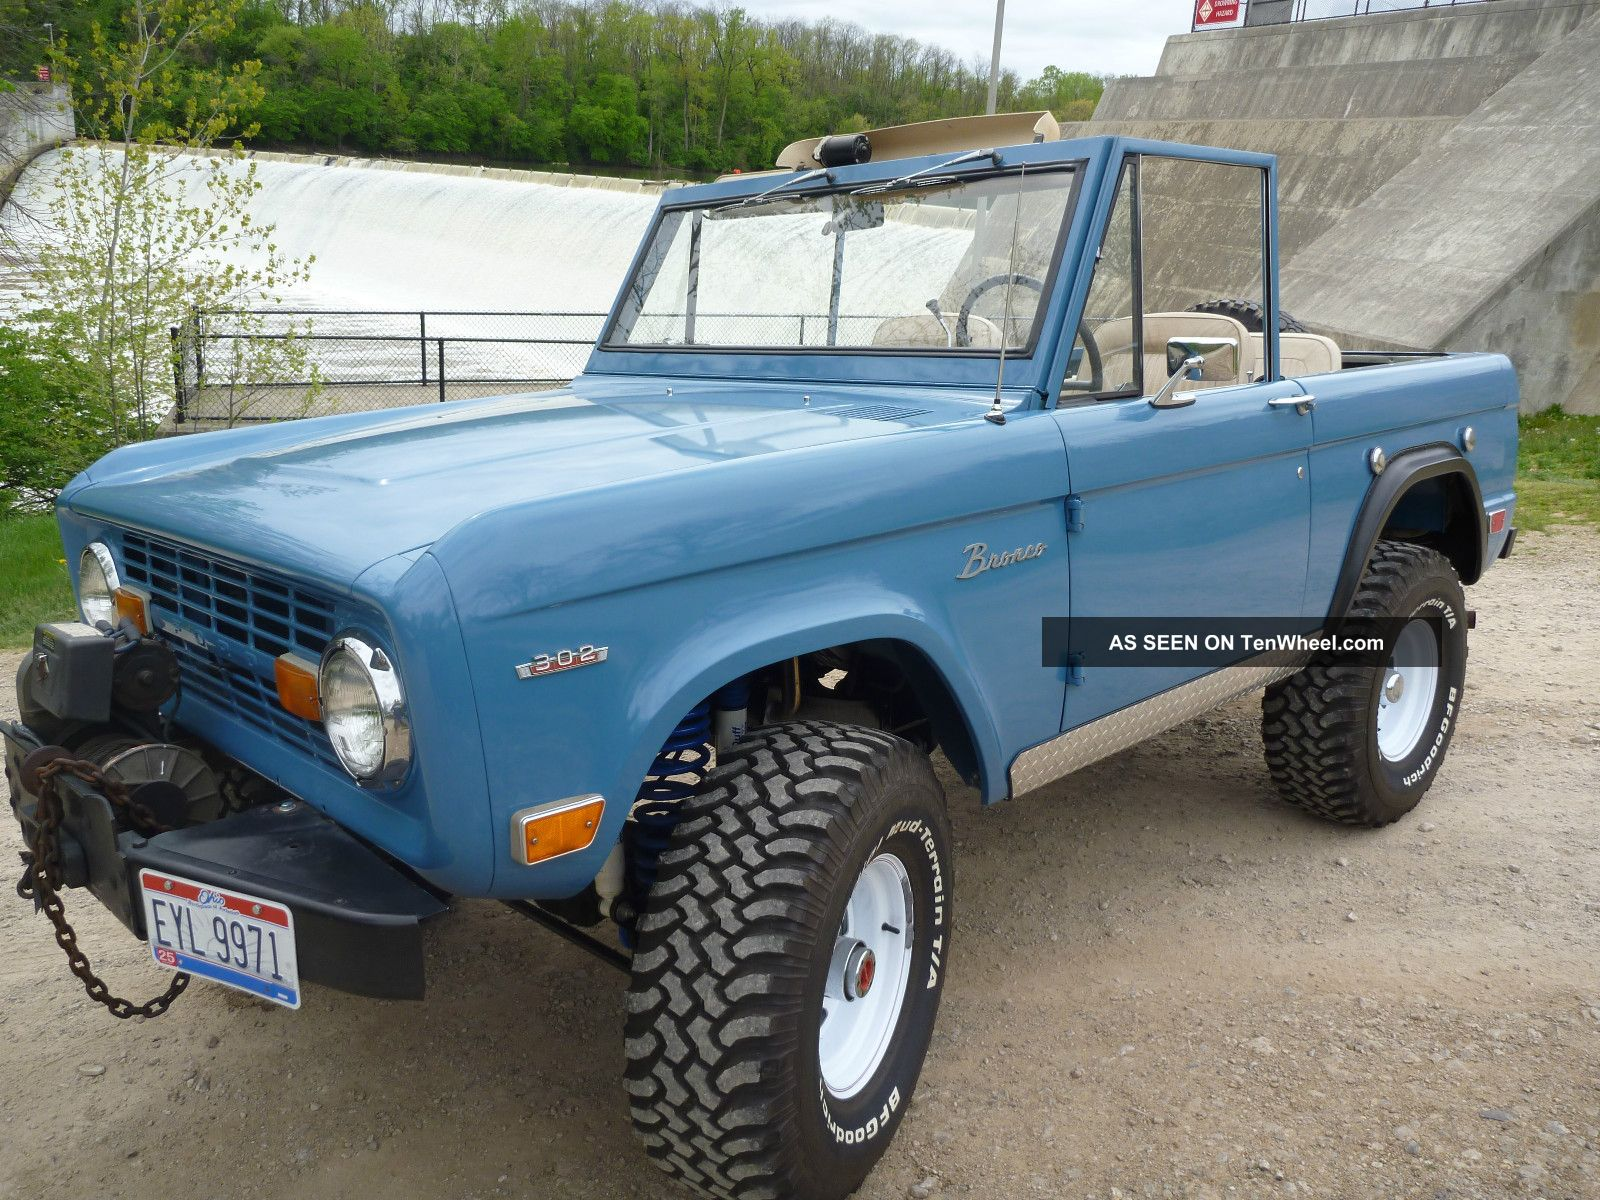 1969 Bronco 302 Wiring Diagram Library Simple Car Engine Flathead Wikipedia The Free